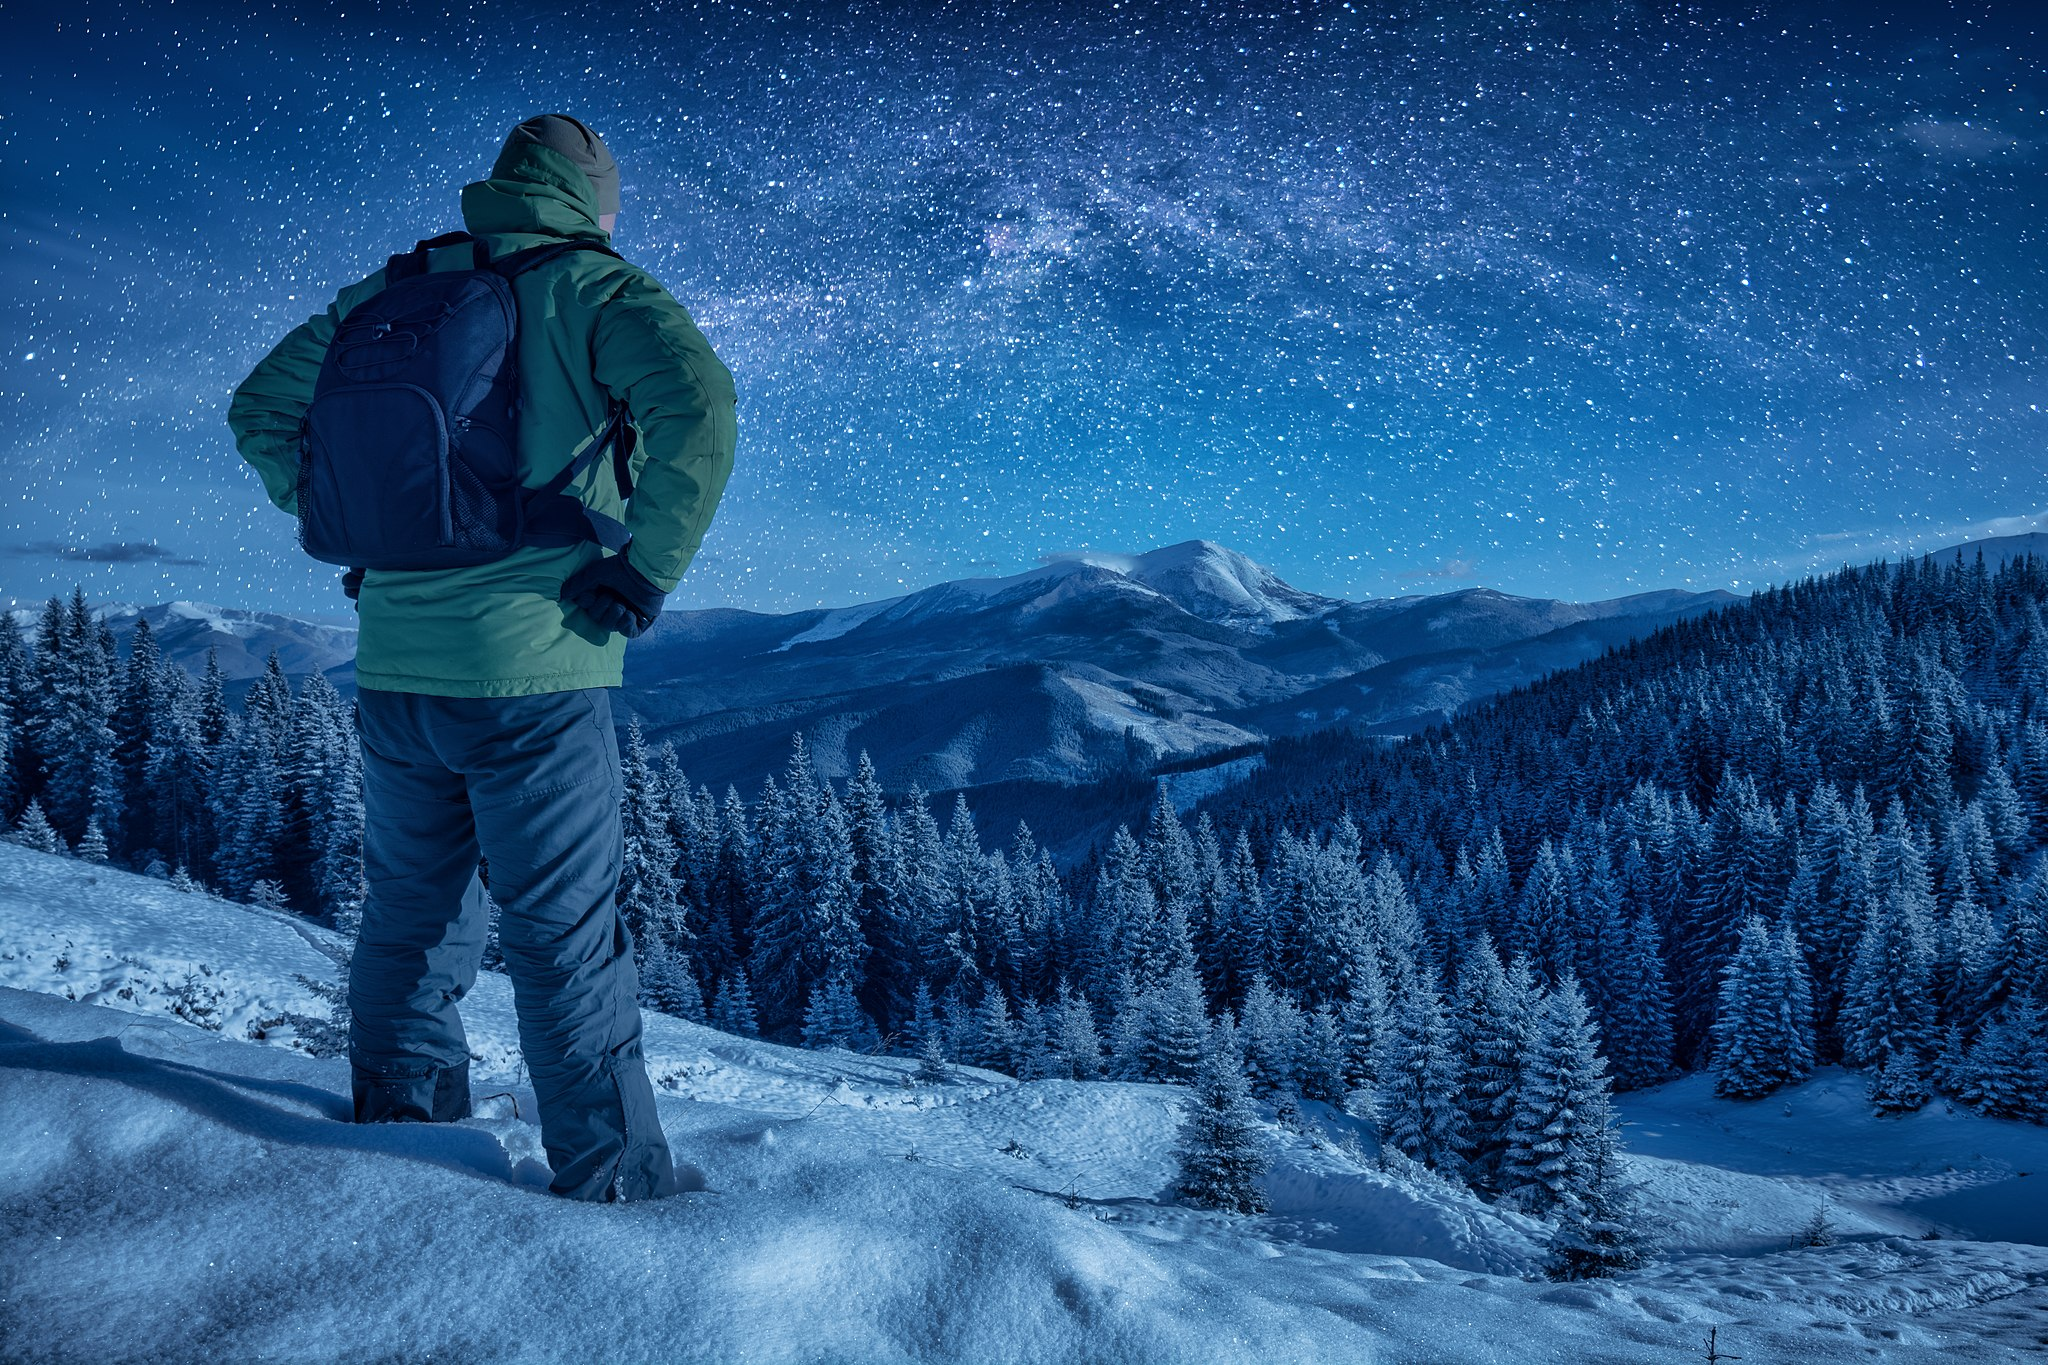 A climber standing on a snowy slope at night. Milky way in a starry sky above the mountain top; image by Vian via Wikimedia Commons.